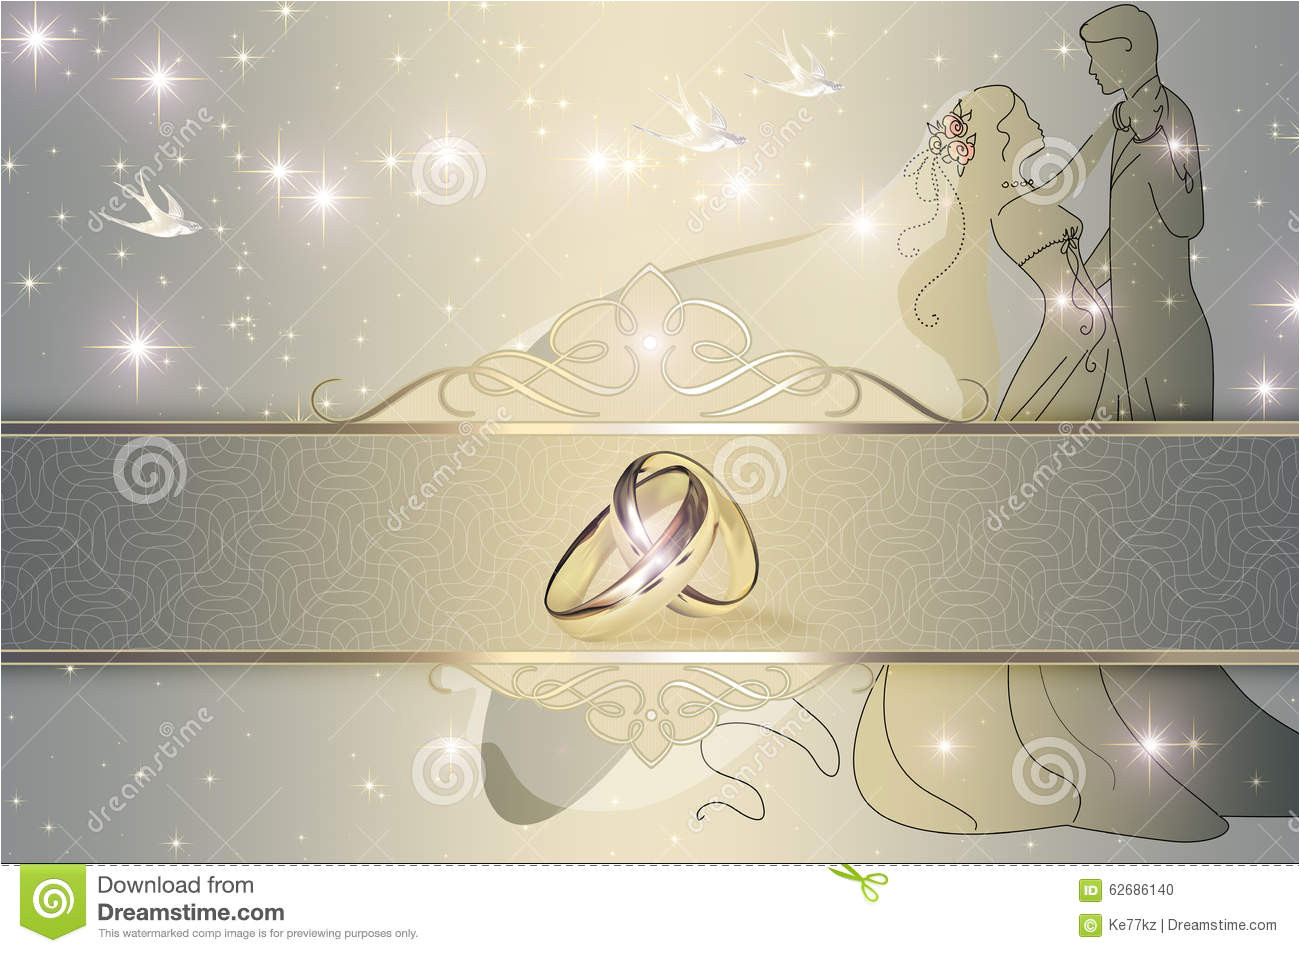 wedding invitation card design decorative background gold rings template 62686140 jpg